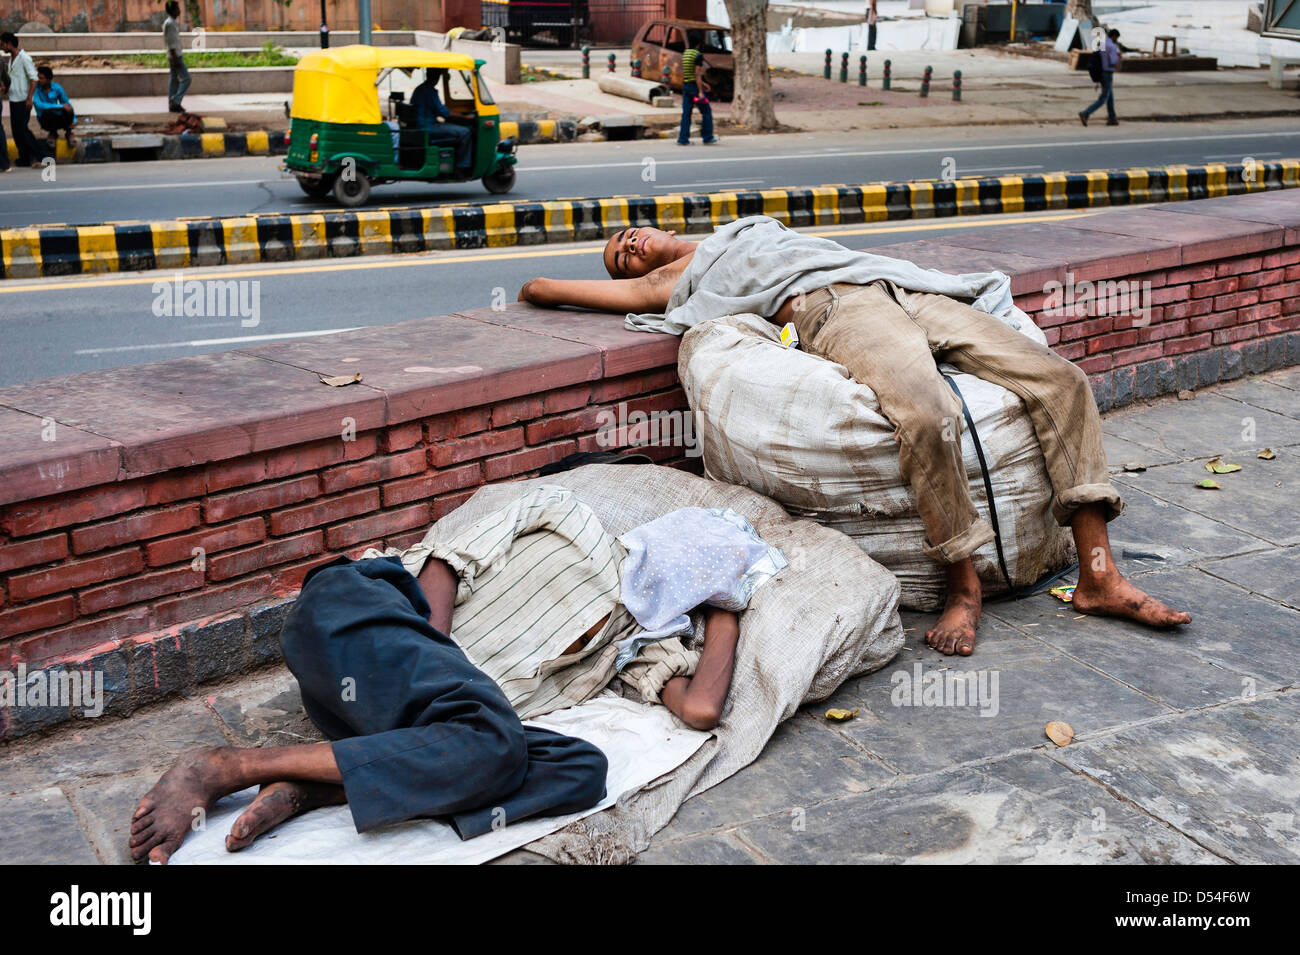 Homeless people asleep on the side of a busy road in Karol Bagh, a salubrious area of New Delhi, India. - Stock Image